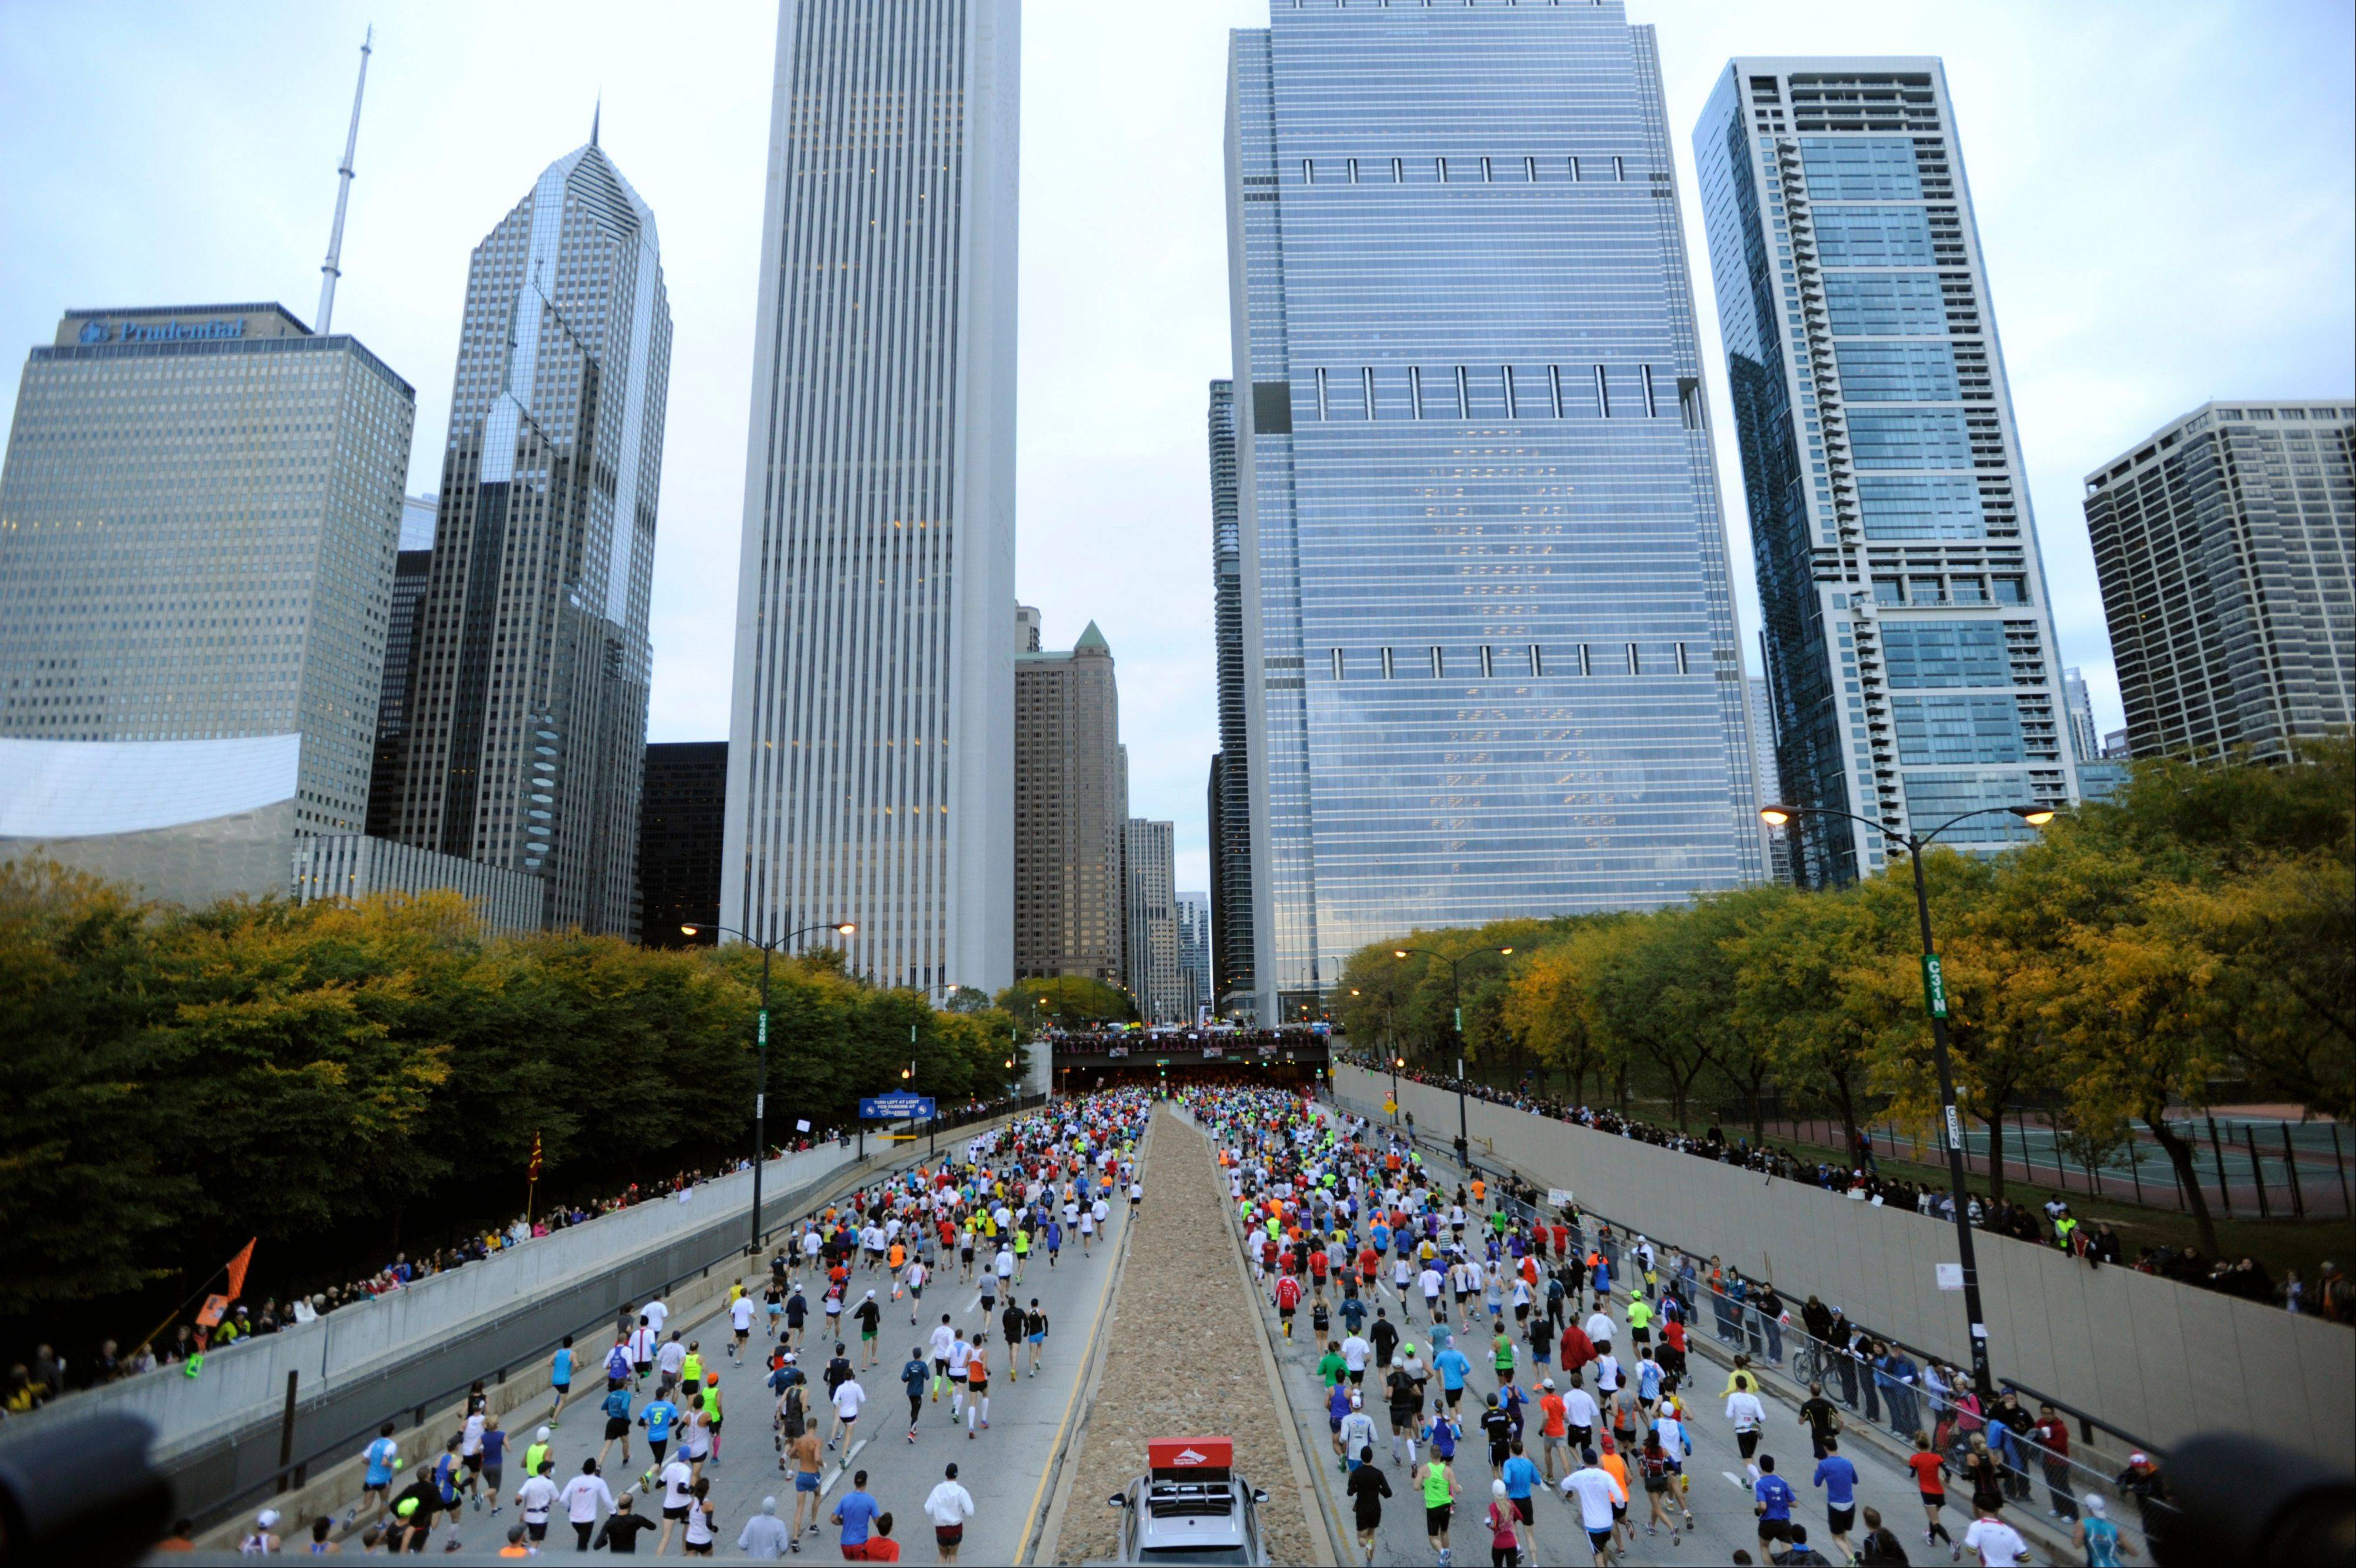 With 42-degree temperatures at the start of this year's Chicago Marathon, the conditions were good for a race marked by tragedy and mishap in recent years.